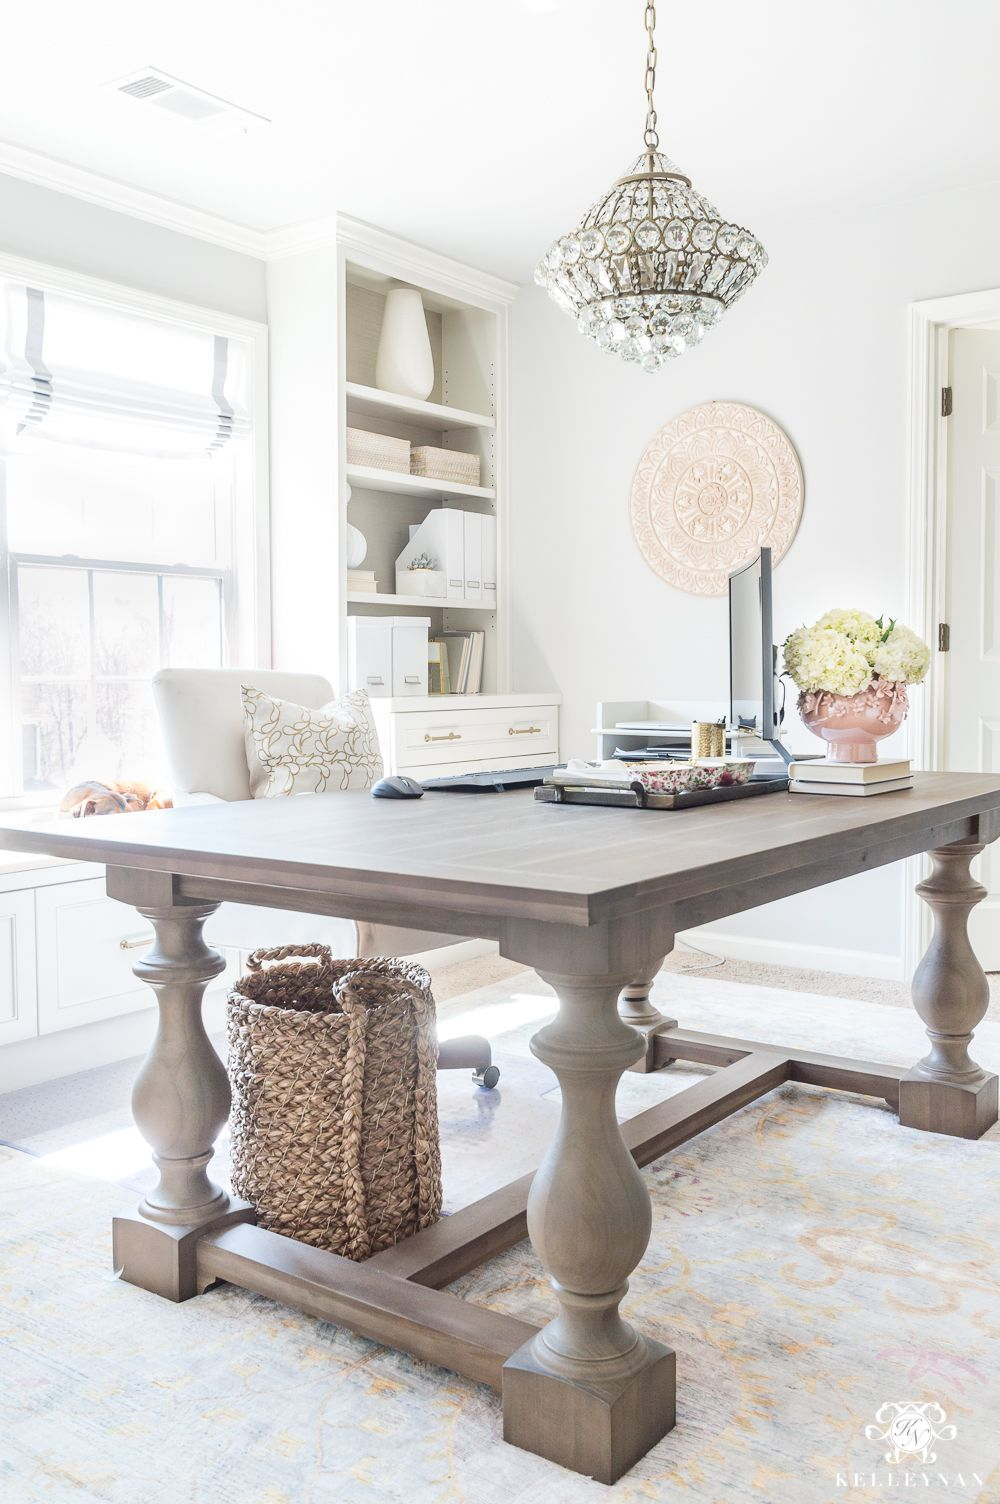 2018 Spring Home Tour: Decorating Ideas for Every Room in the House ...